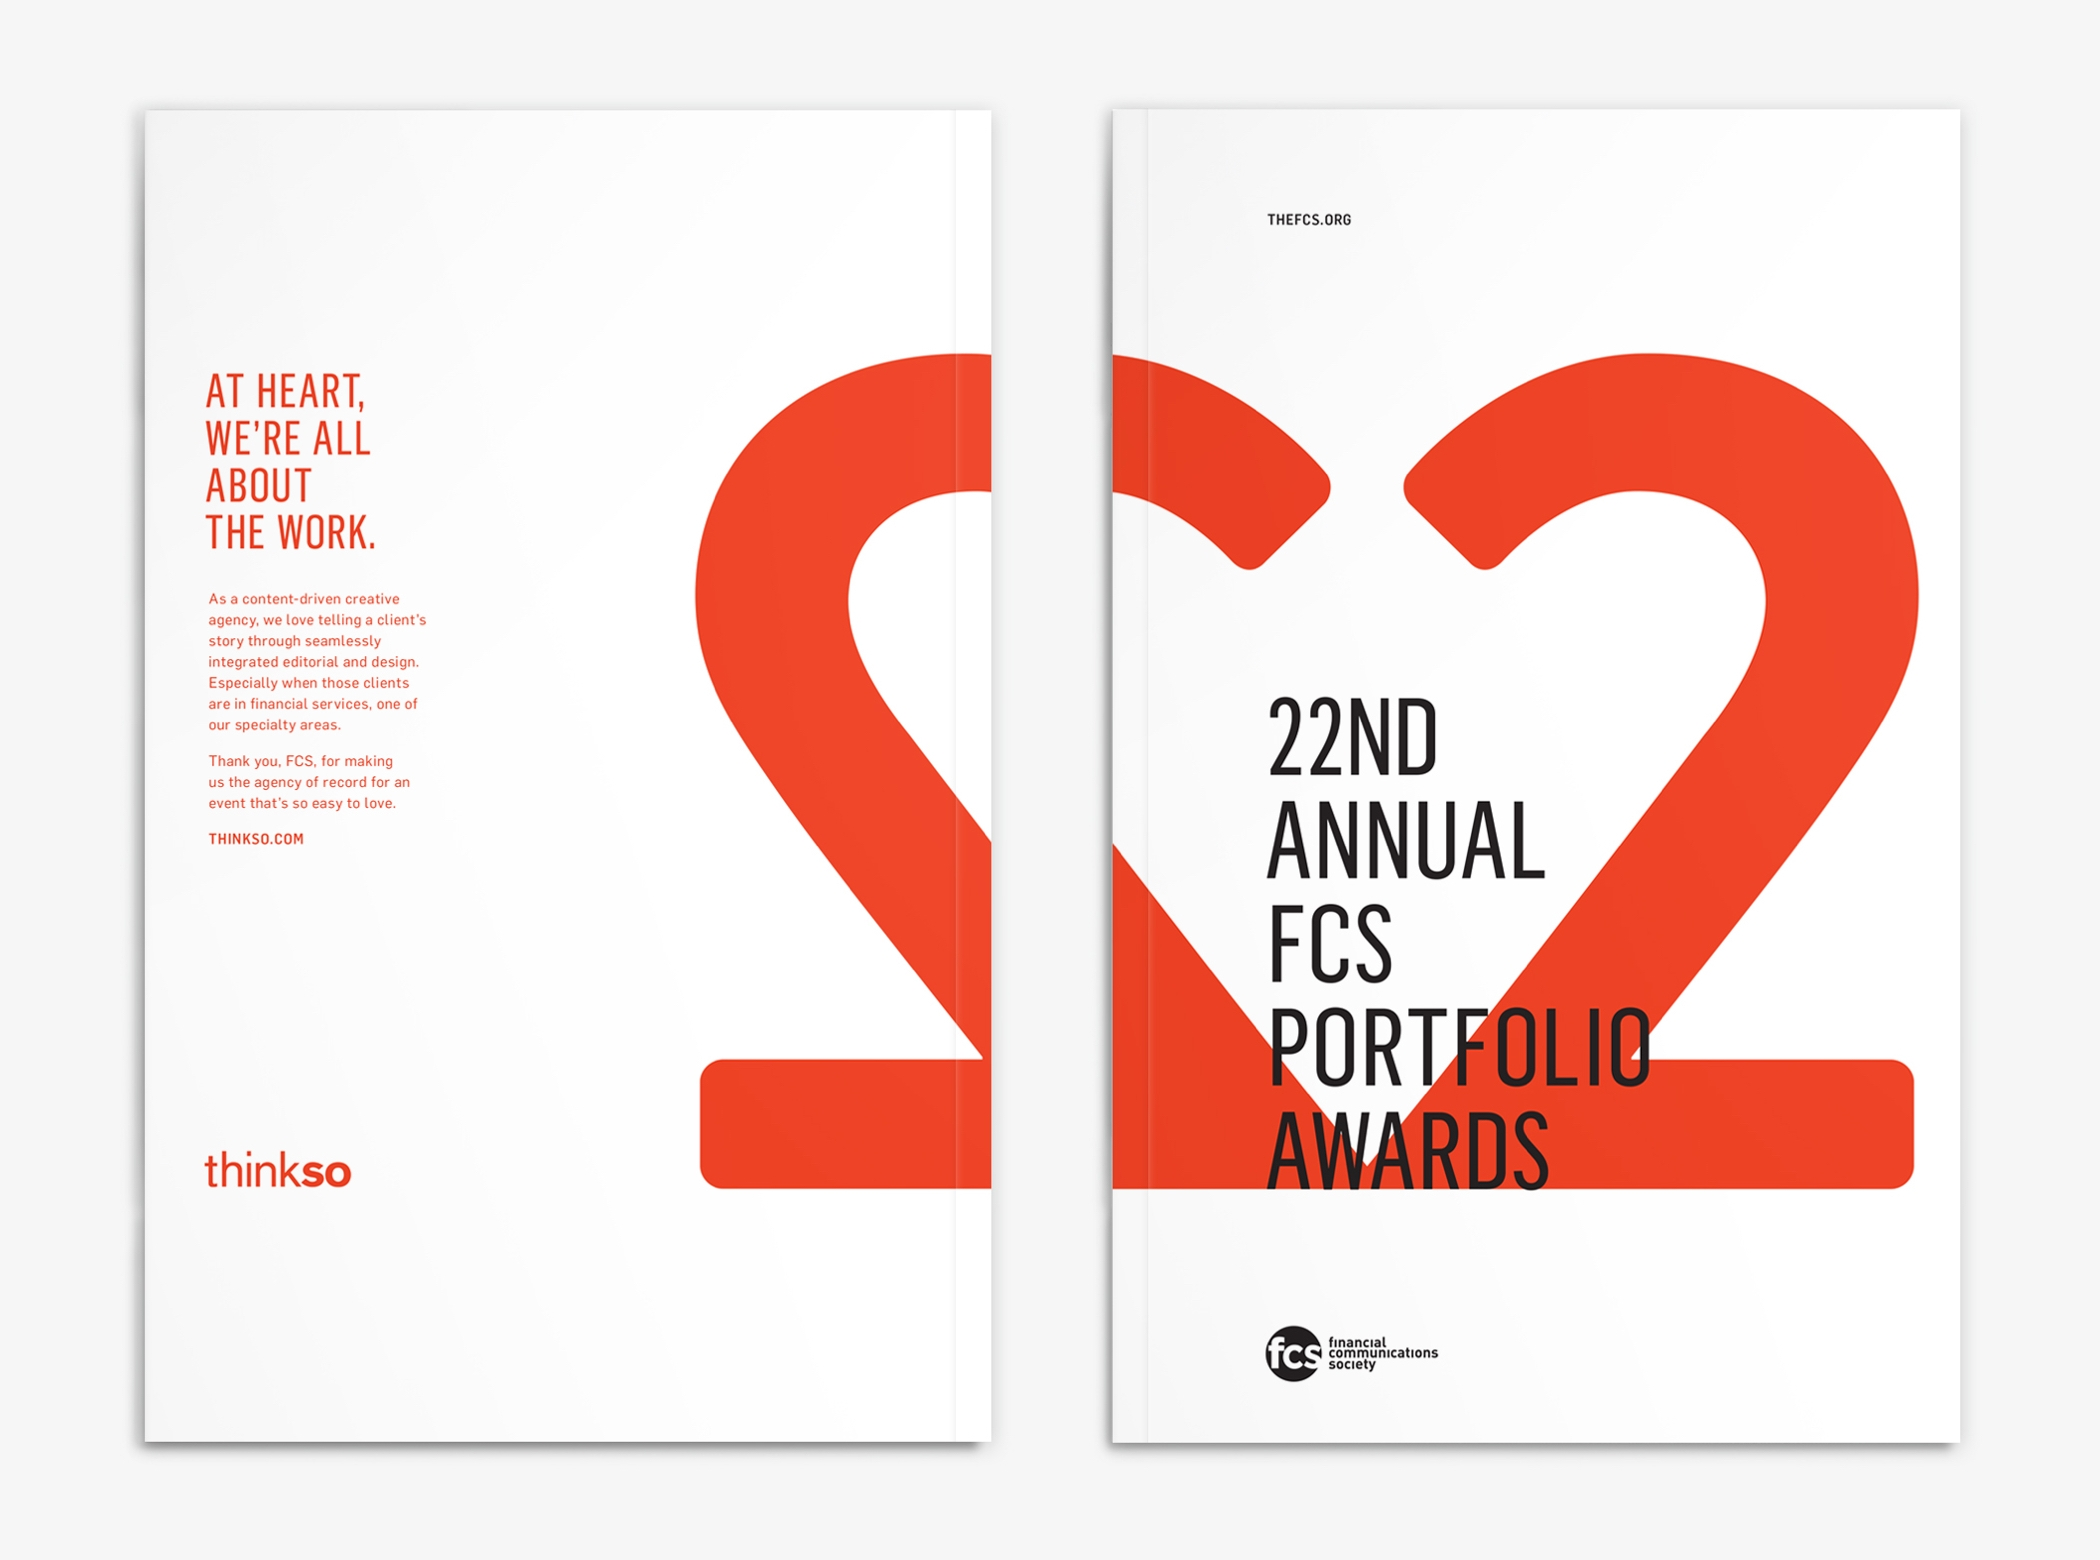 Front and back of the Financial Communications Society 22nd Portfolio Awards program.